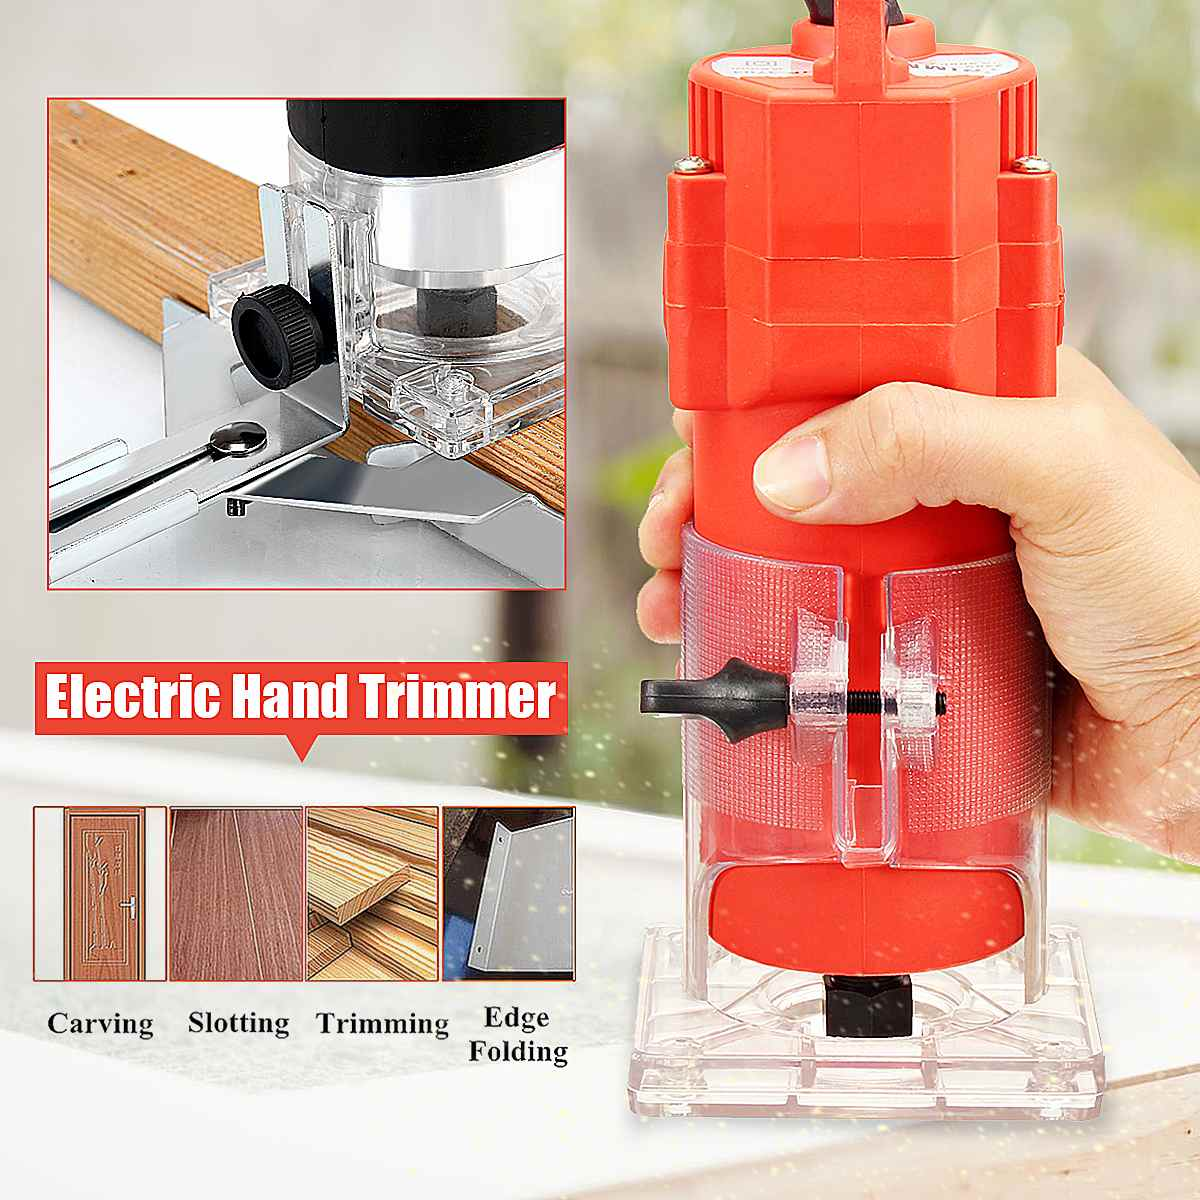 1/4 50HZ 220V 450W/1200W Corded Electric Hand Trimmer Wood Laminator Router Joiners Tools Transparent Base DIY Lift Knob1/4 50HZ 220V 450W/1200W Corded Electric Hand Trimmer Wood Laminator Router Joiners Tools Transparent Base DIY Lift Knob